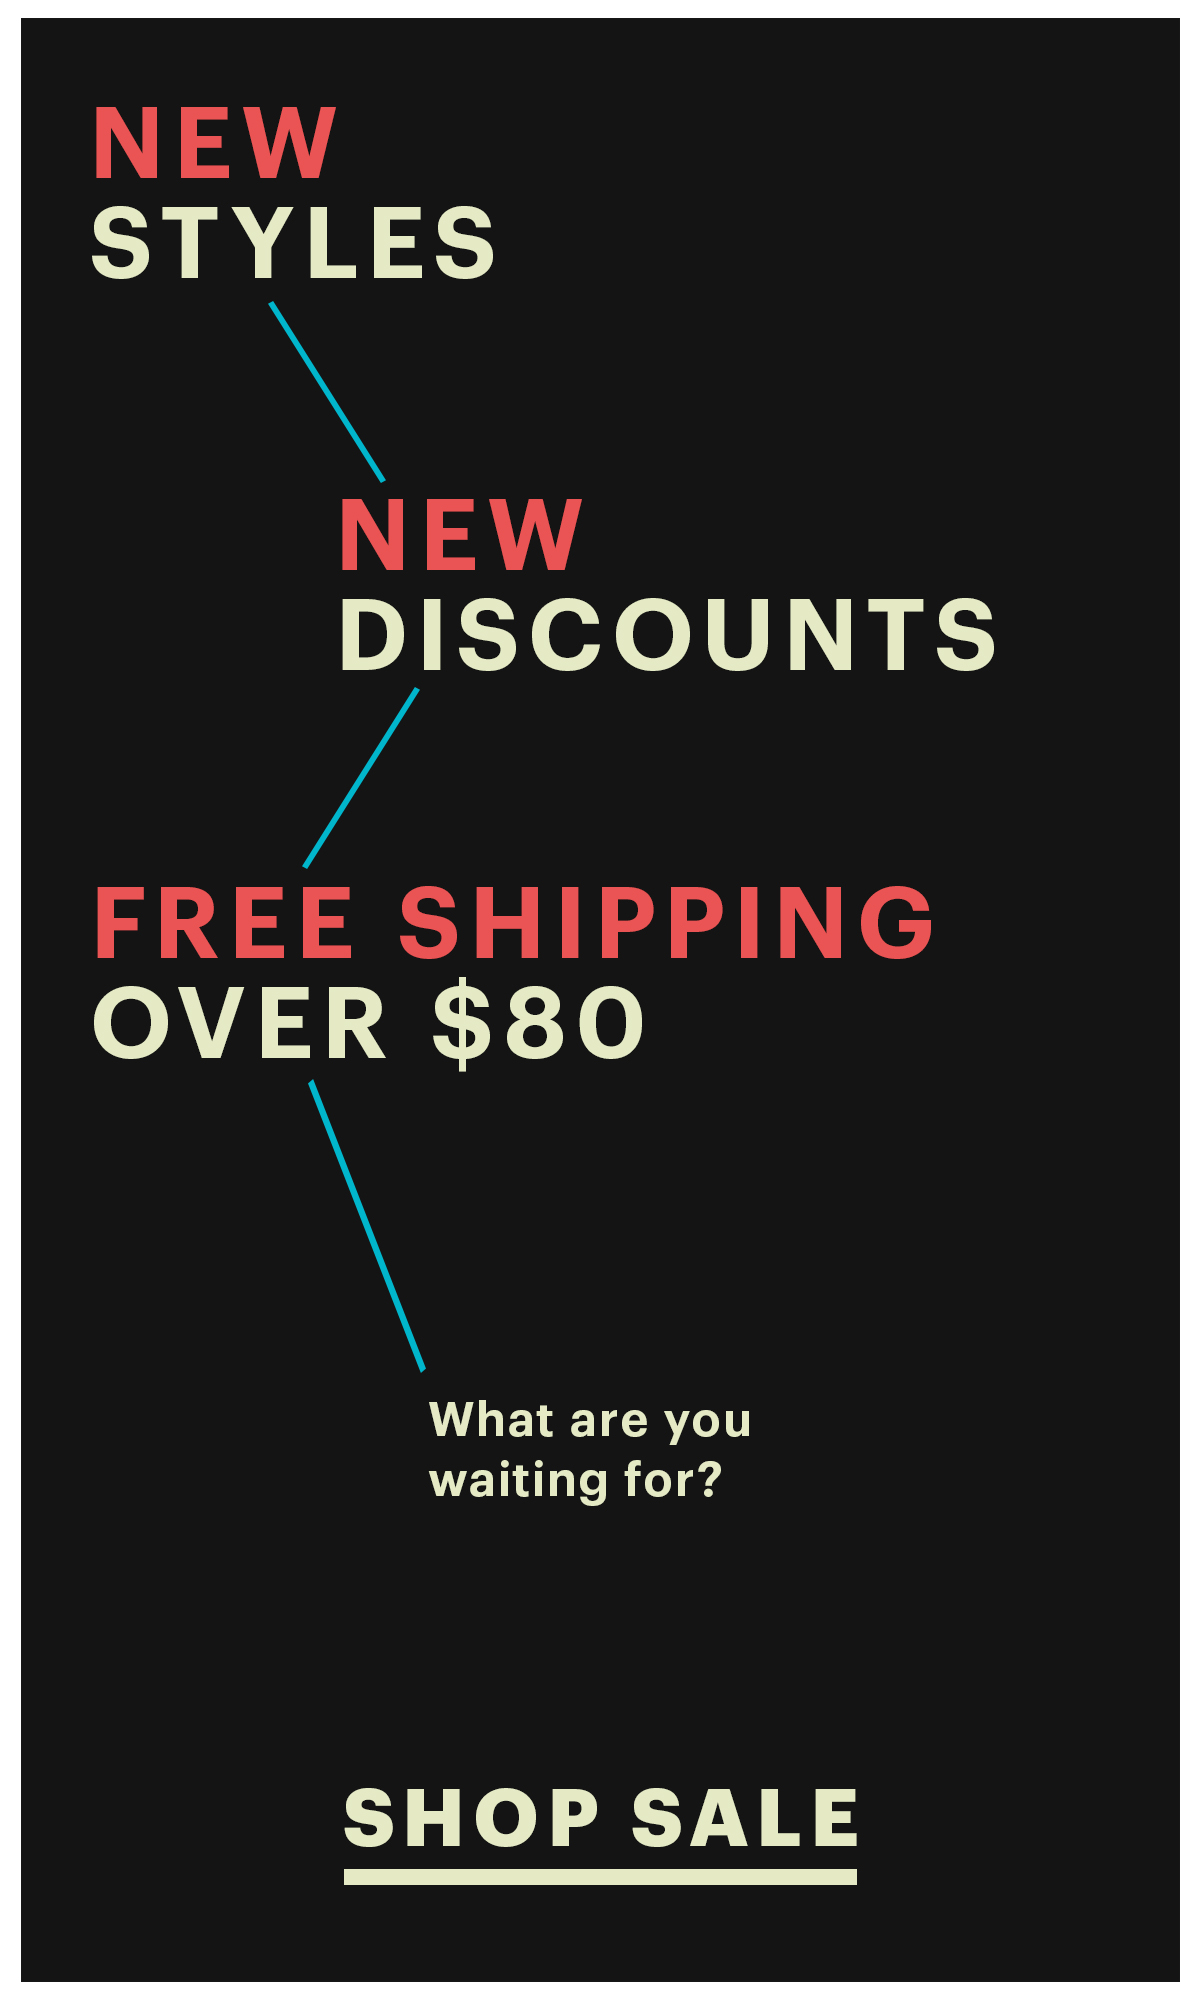 New Styles - New Discounts - Free Shipping Over $80 - What are you waiting for/? | Shop Sale